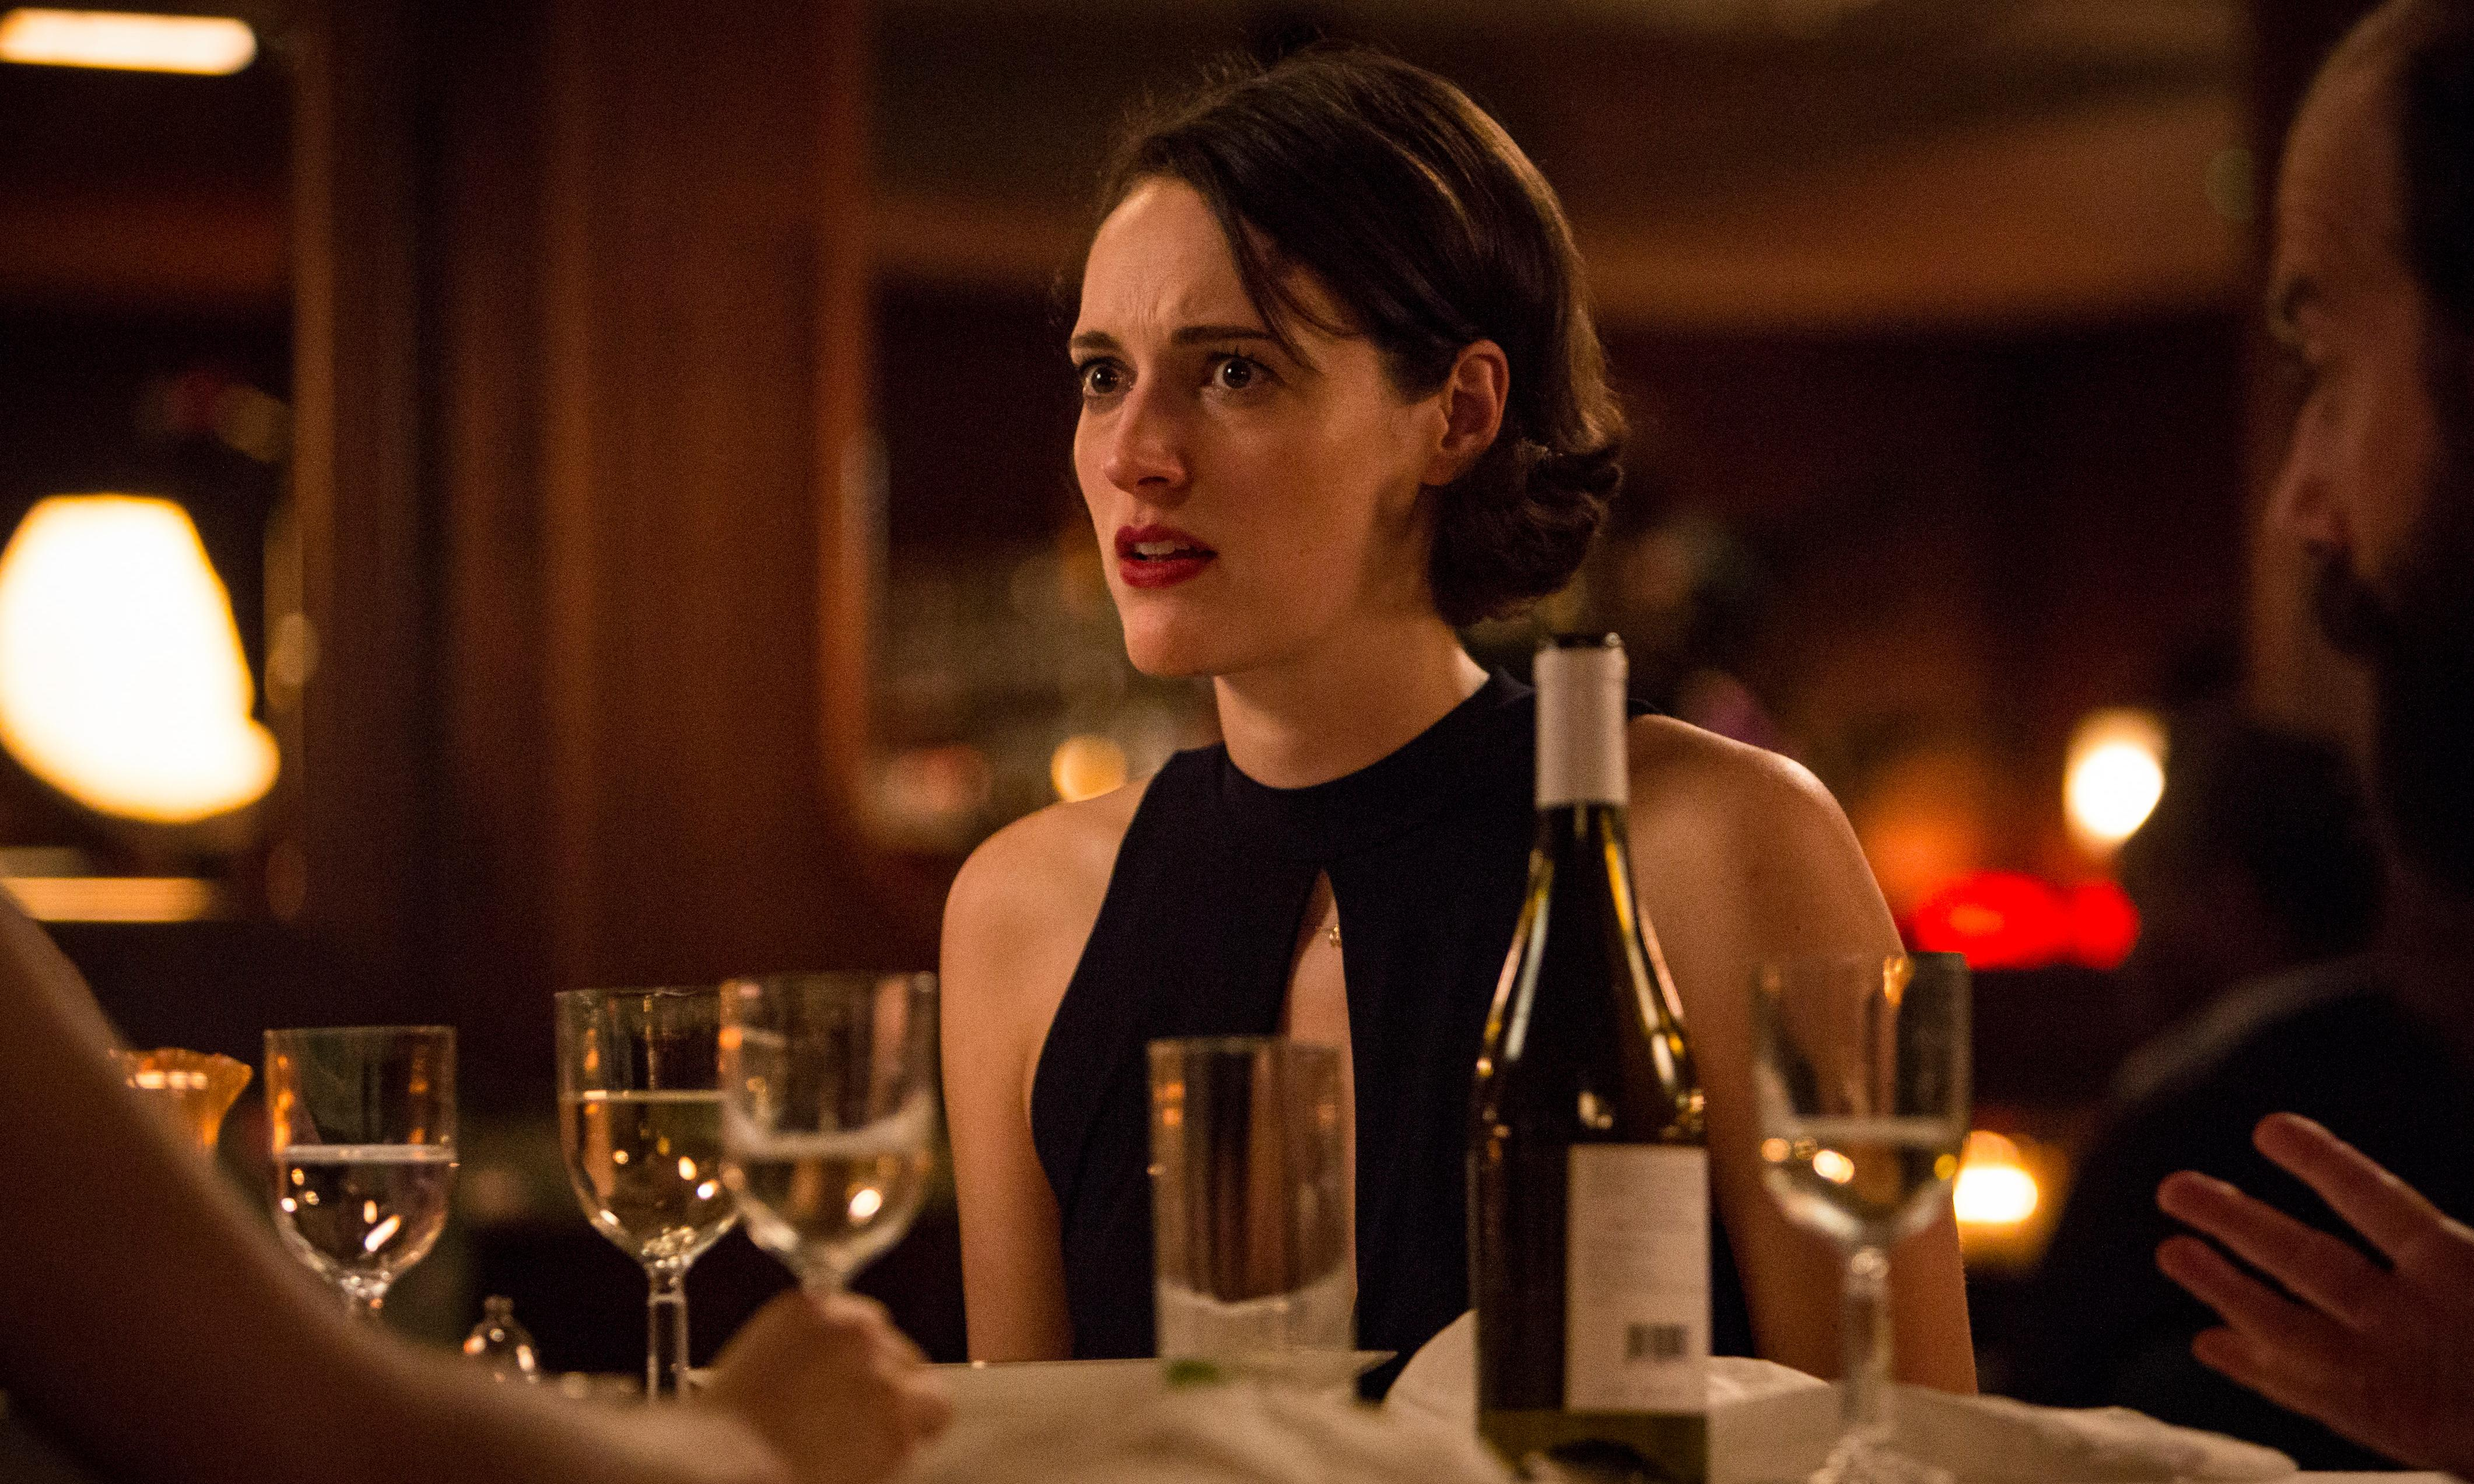 'It's a WOW from me' – fans review the return of Fleabag